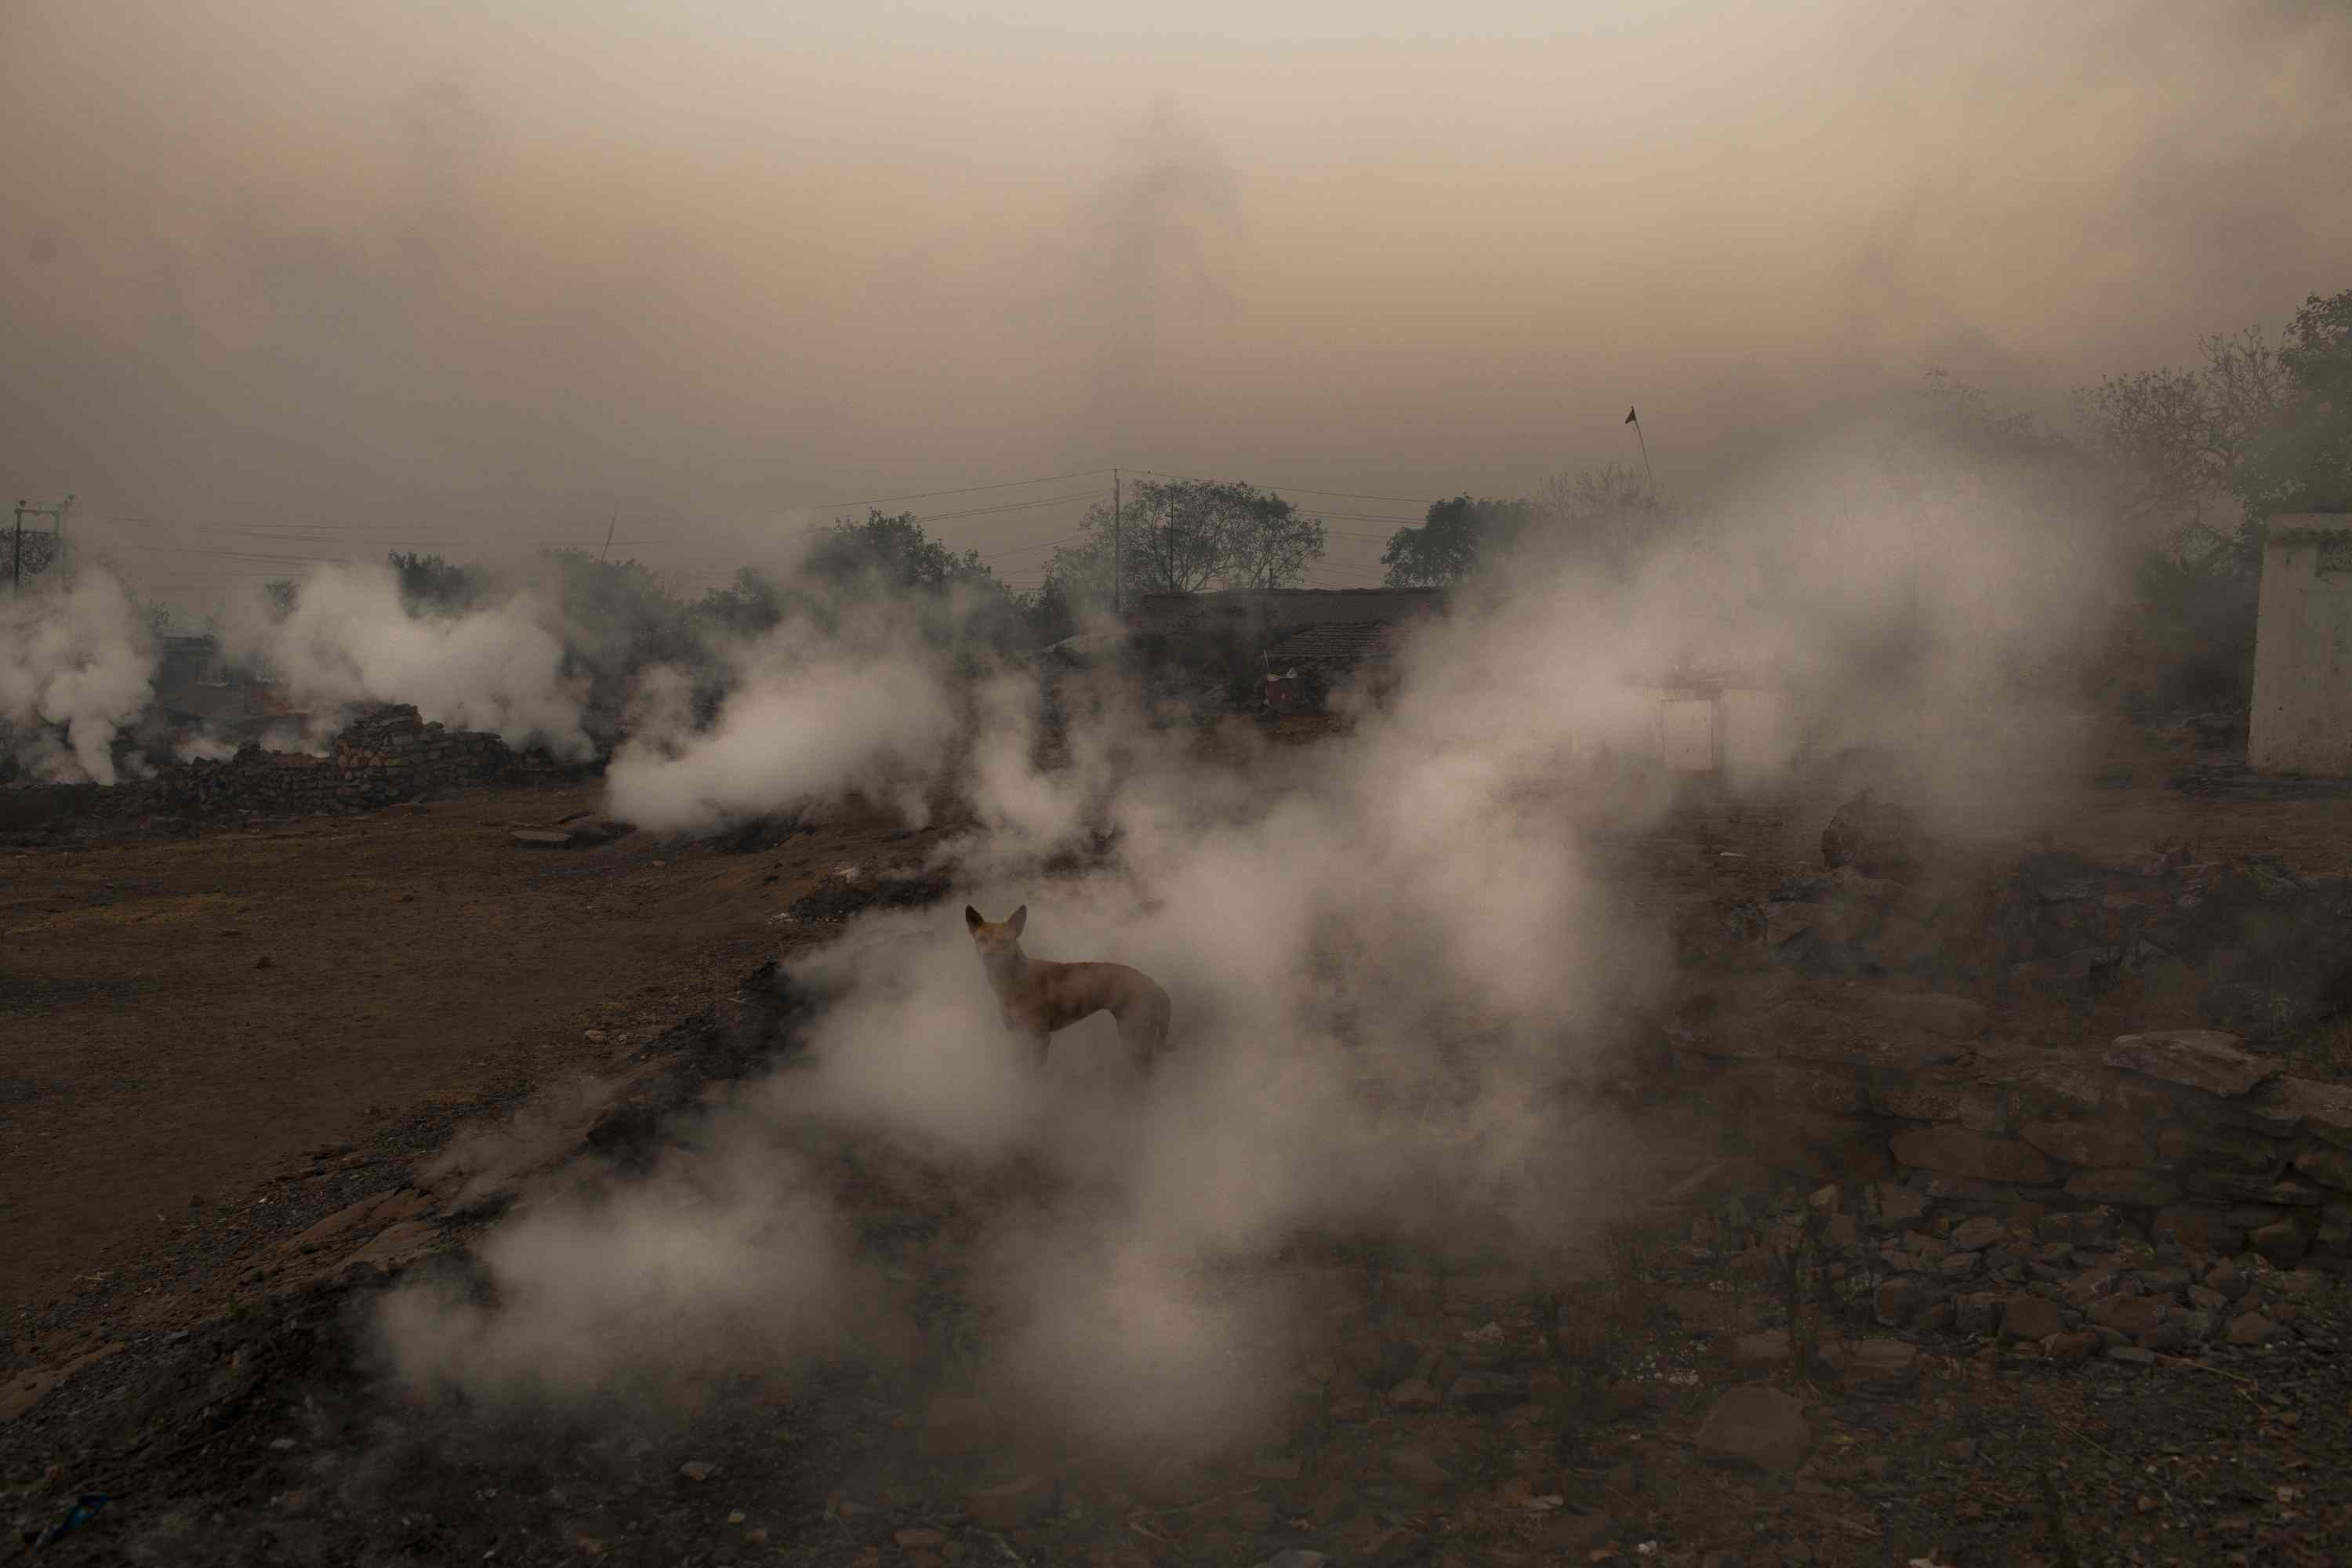 Dog amid noxious fumes from fissures in the ground, Jharia